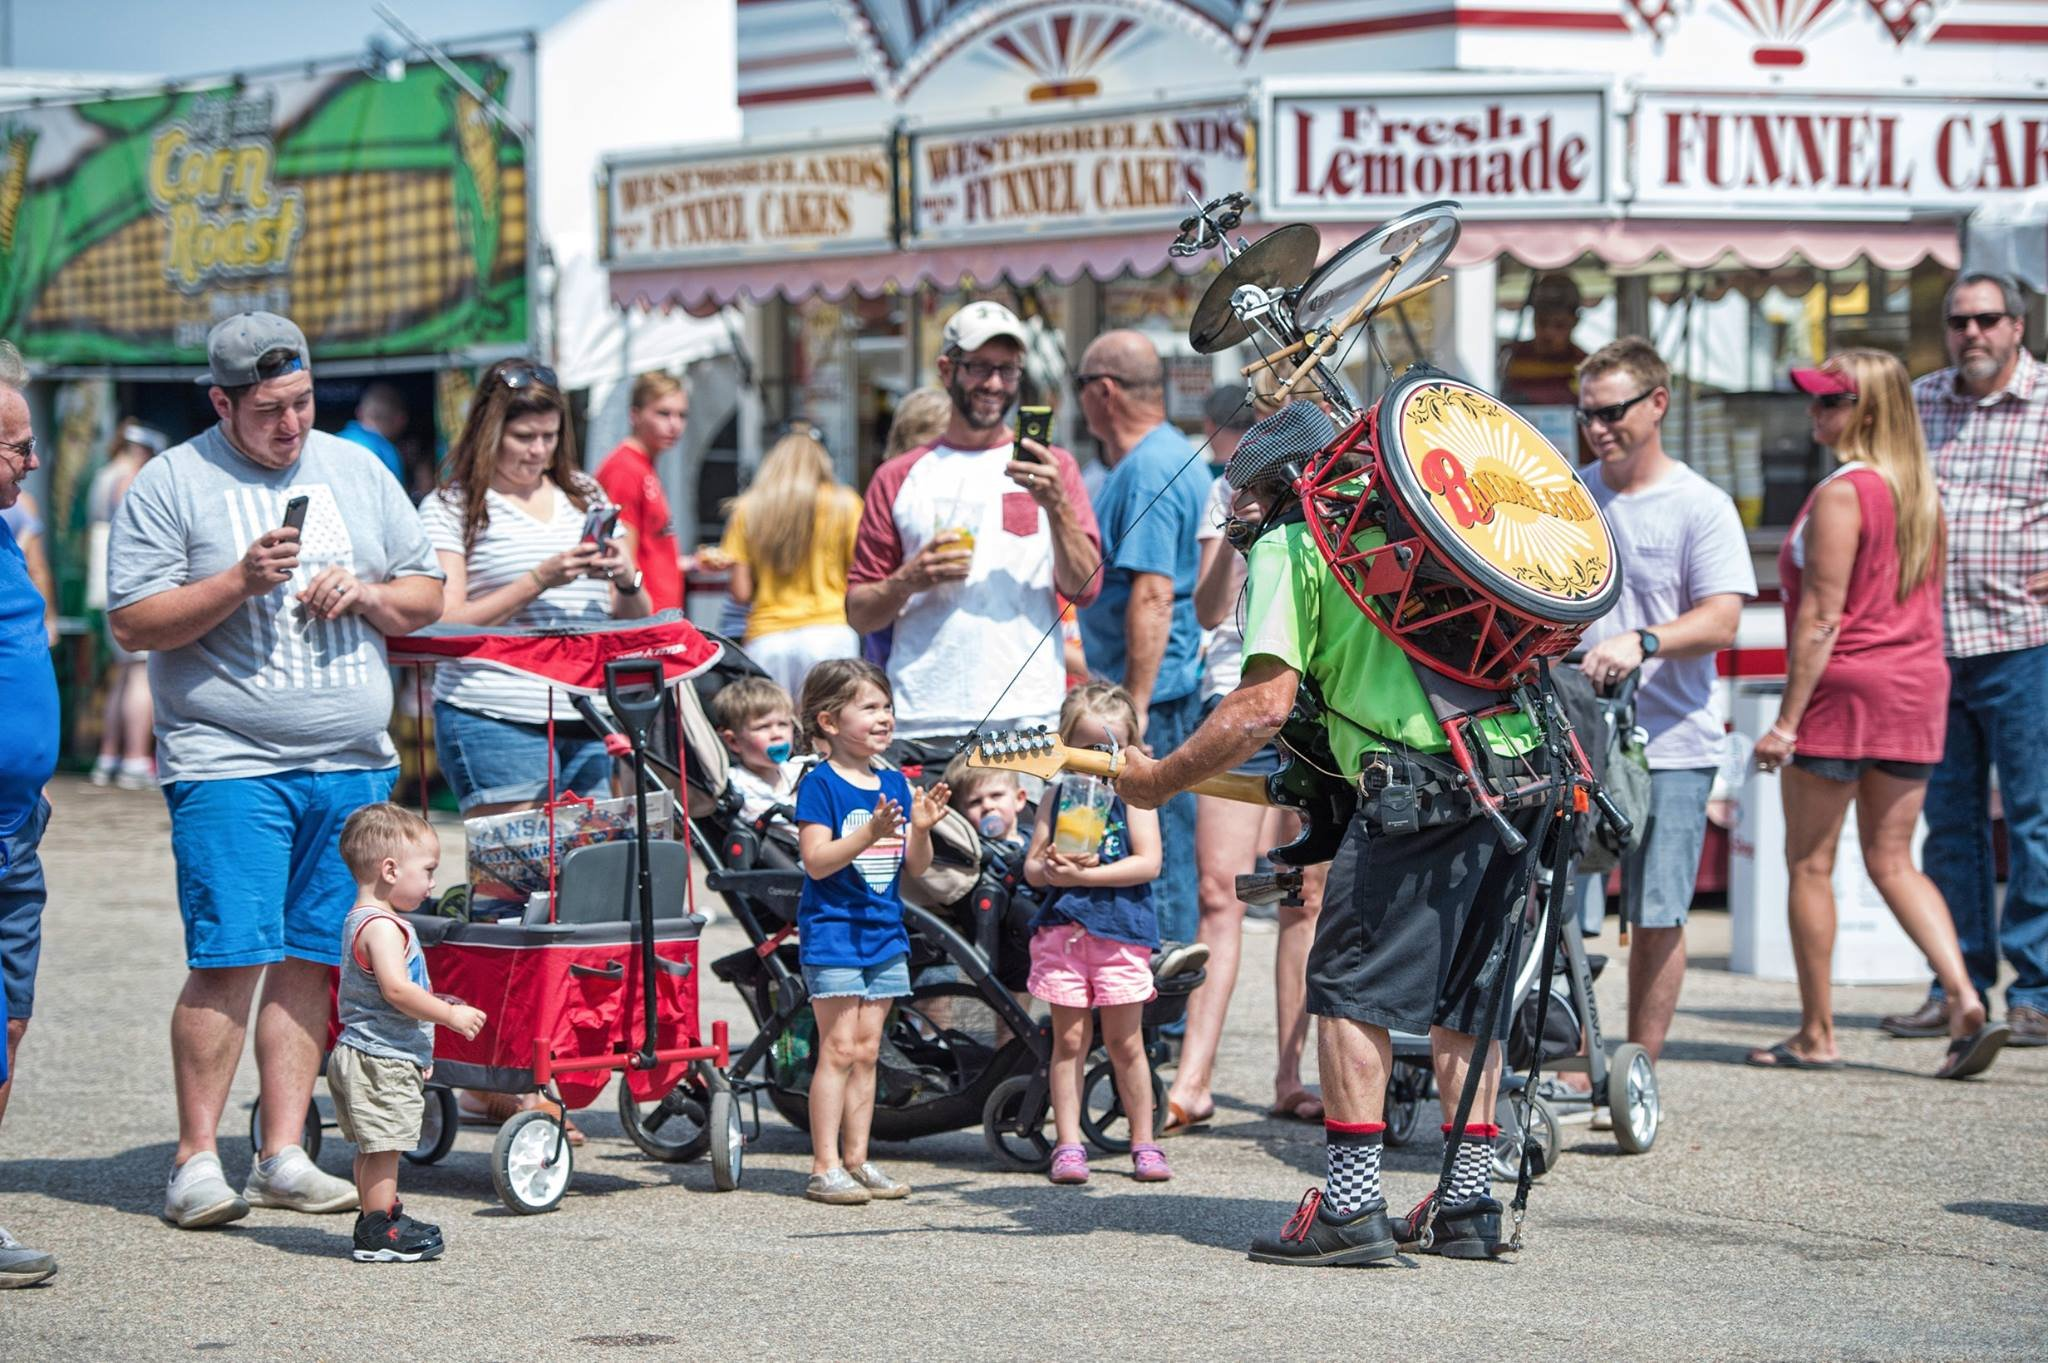 Kansas lawmakers have introduced a new bill that would allow the State Fair to leave the city of Hutchinson after more than 100 years. (Kansas State Fair)